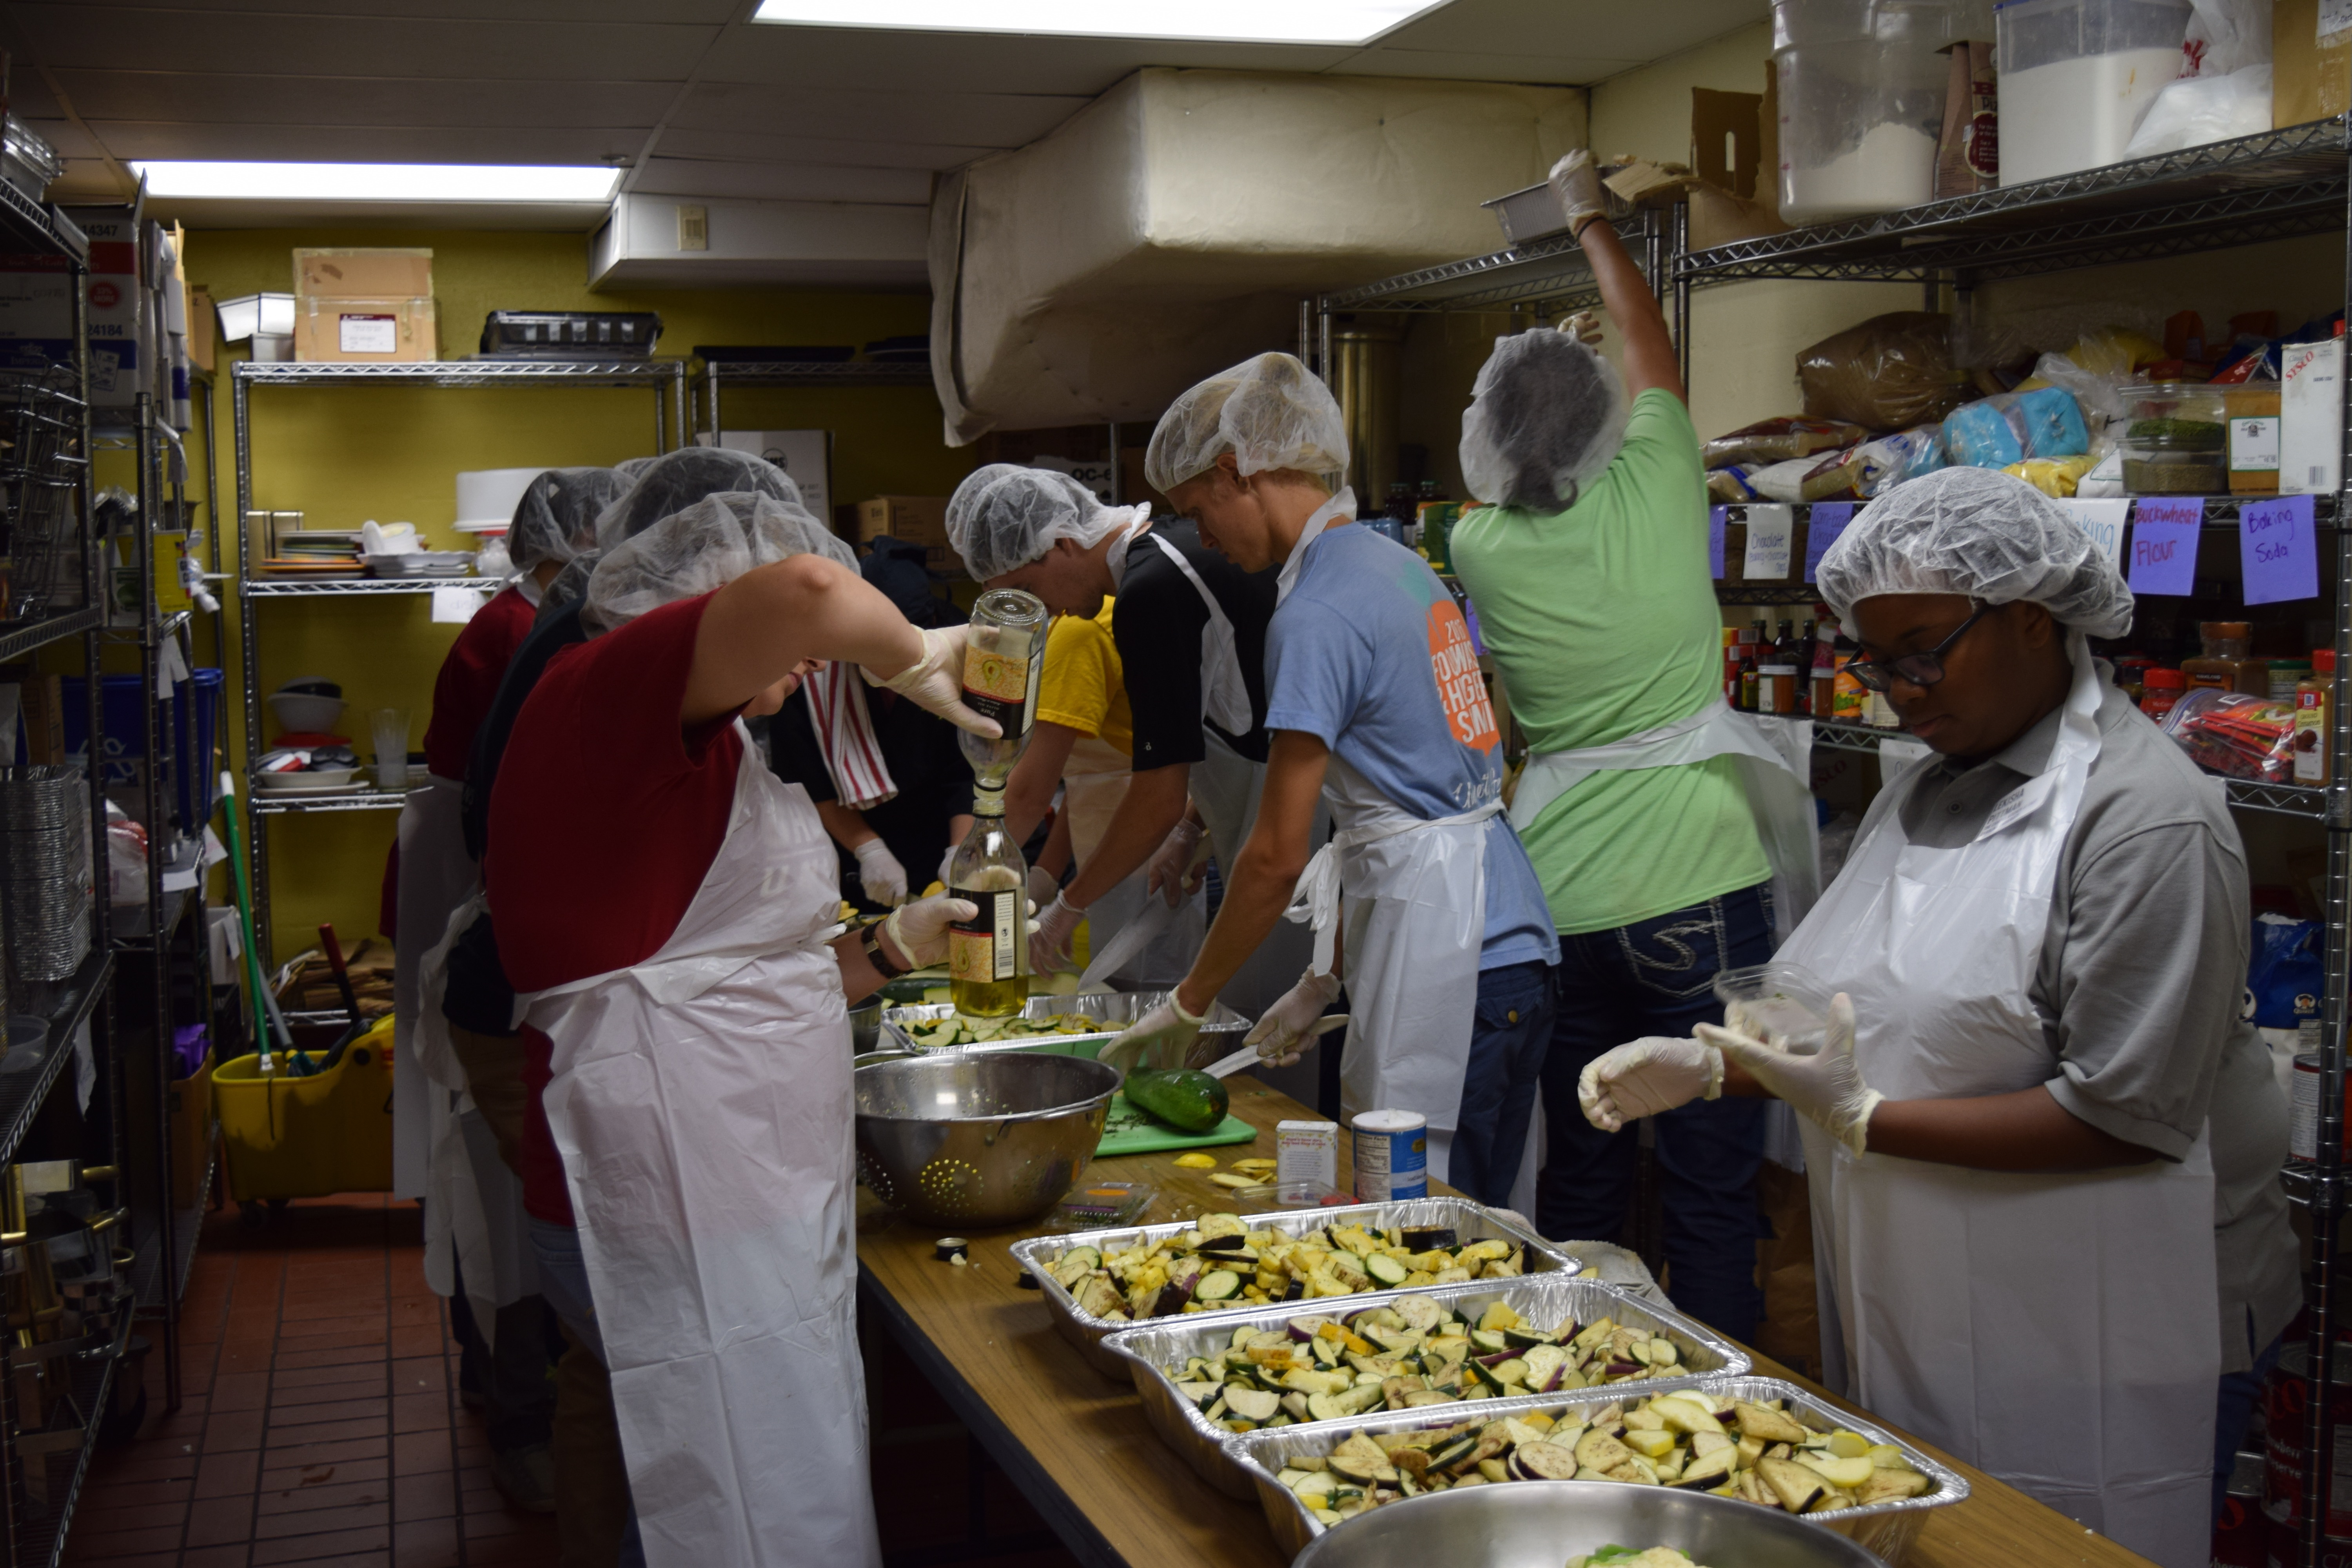 Students work in a Campus Kitchen to make meals for those in need